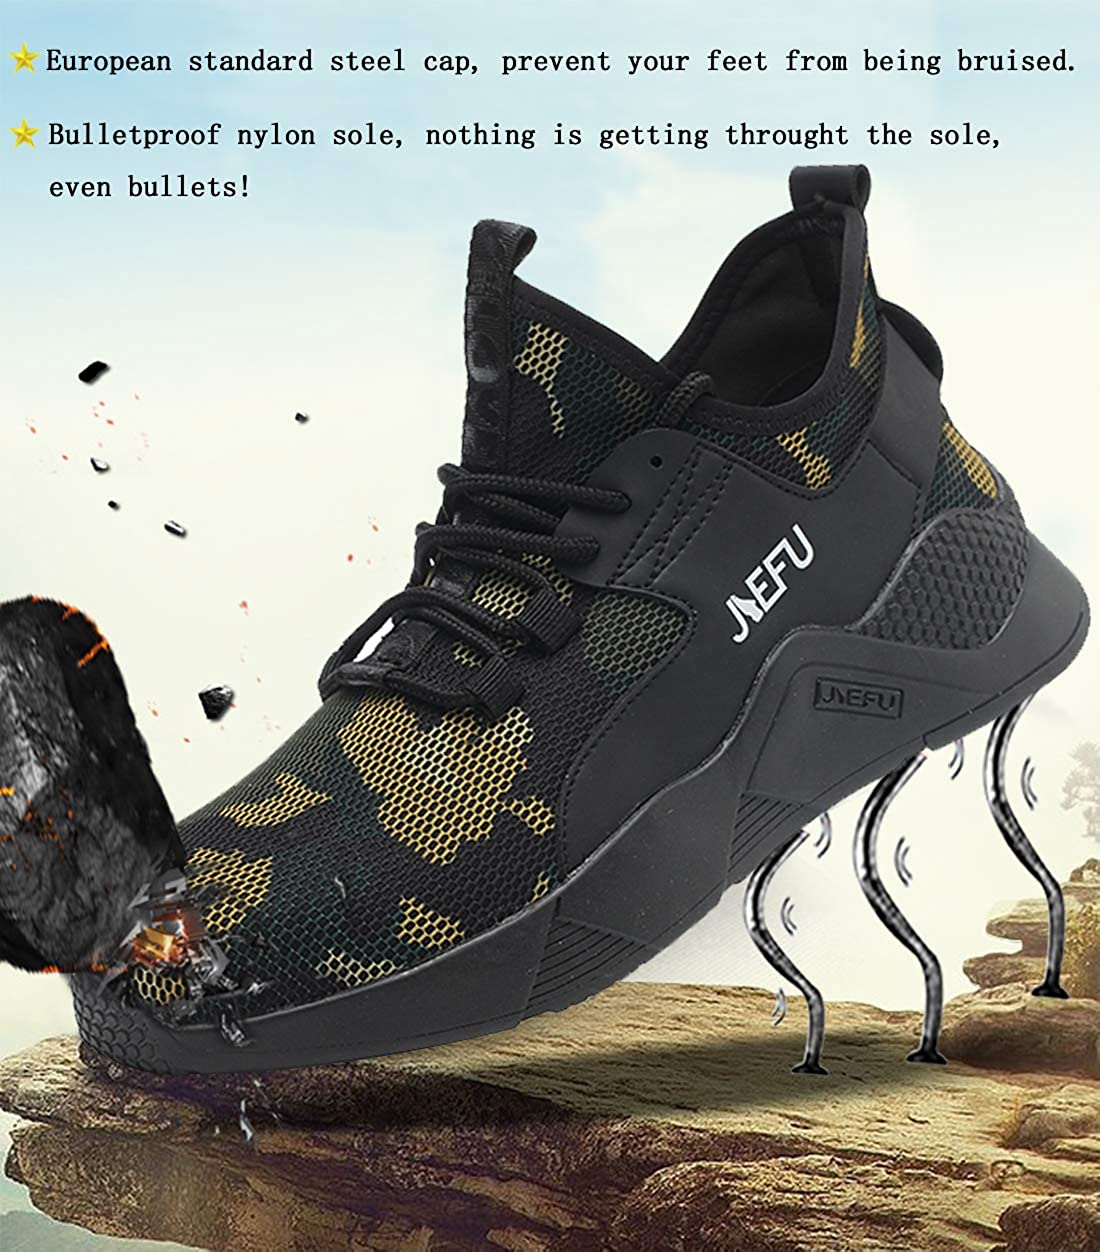 SROTER Unisex Steel Toe Cap Safety Ultra Lightweight Breathable Work Trainer Shoes Sport Sneaker Safety Shoes Men Women